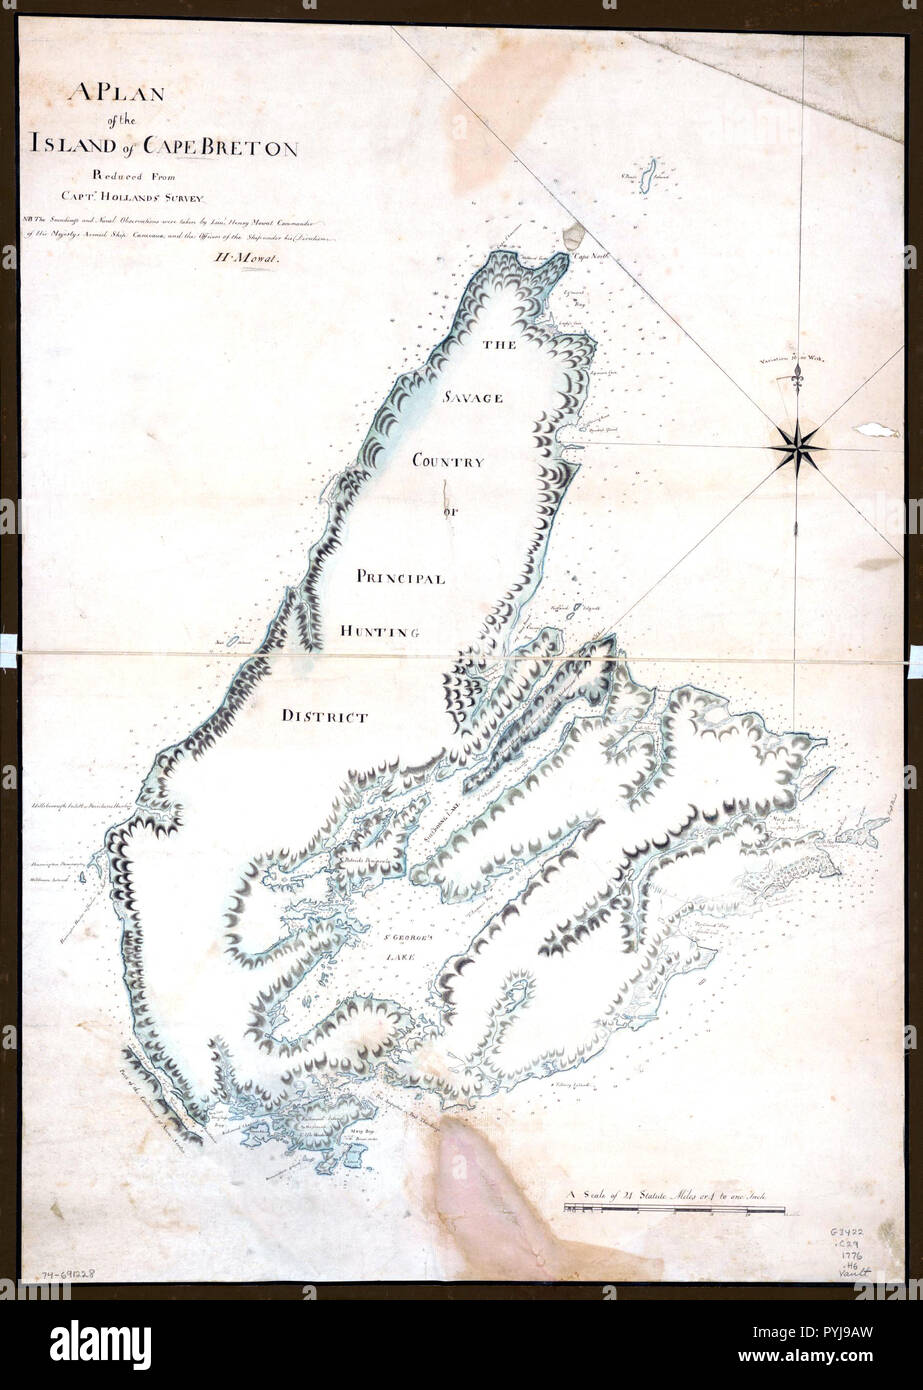 Vintage Maps / Antique Maps - A plan of the island of Cape ... on st. john's map, ontario map, north shore trail map, cape blanco map, bras d'or lake map, cape north nova scotia, cape brenton, nova scotia map, cape cod central railroad map, newfoundland map, canada map, rupert's land map, fortress louisbourg map, physical characteristics of a map, sydney map, muskoka map, cape farewell map, peggy's cove map, gournia map, london map,